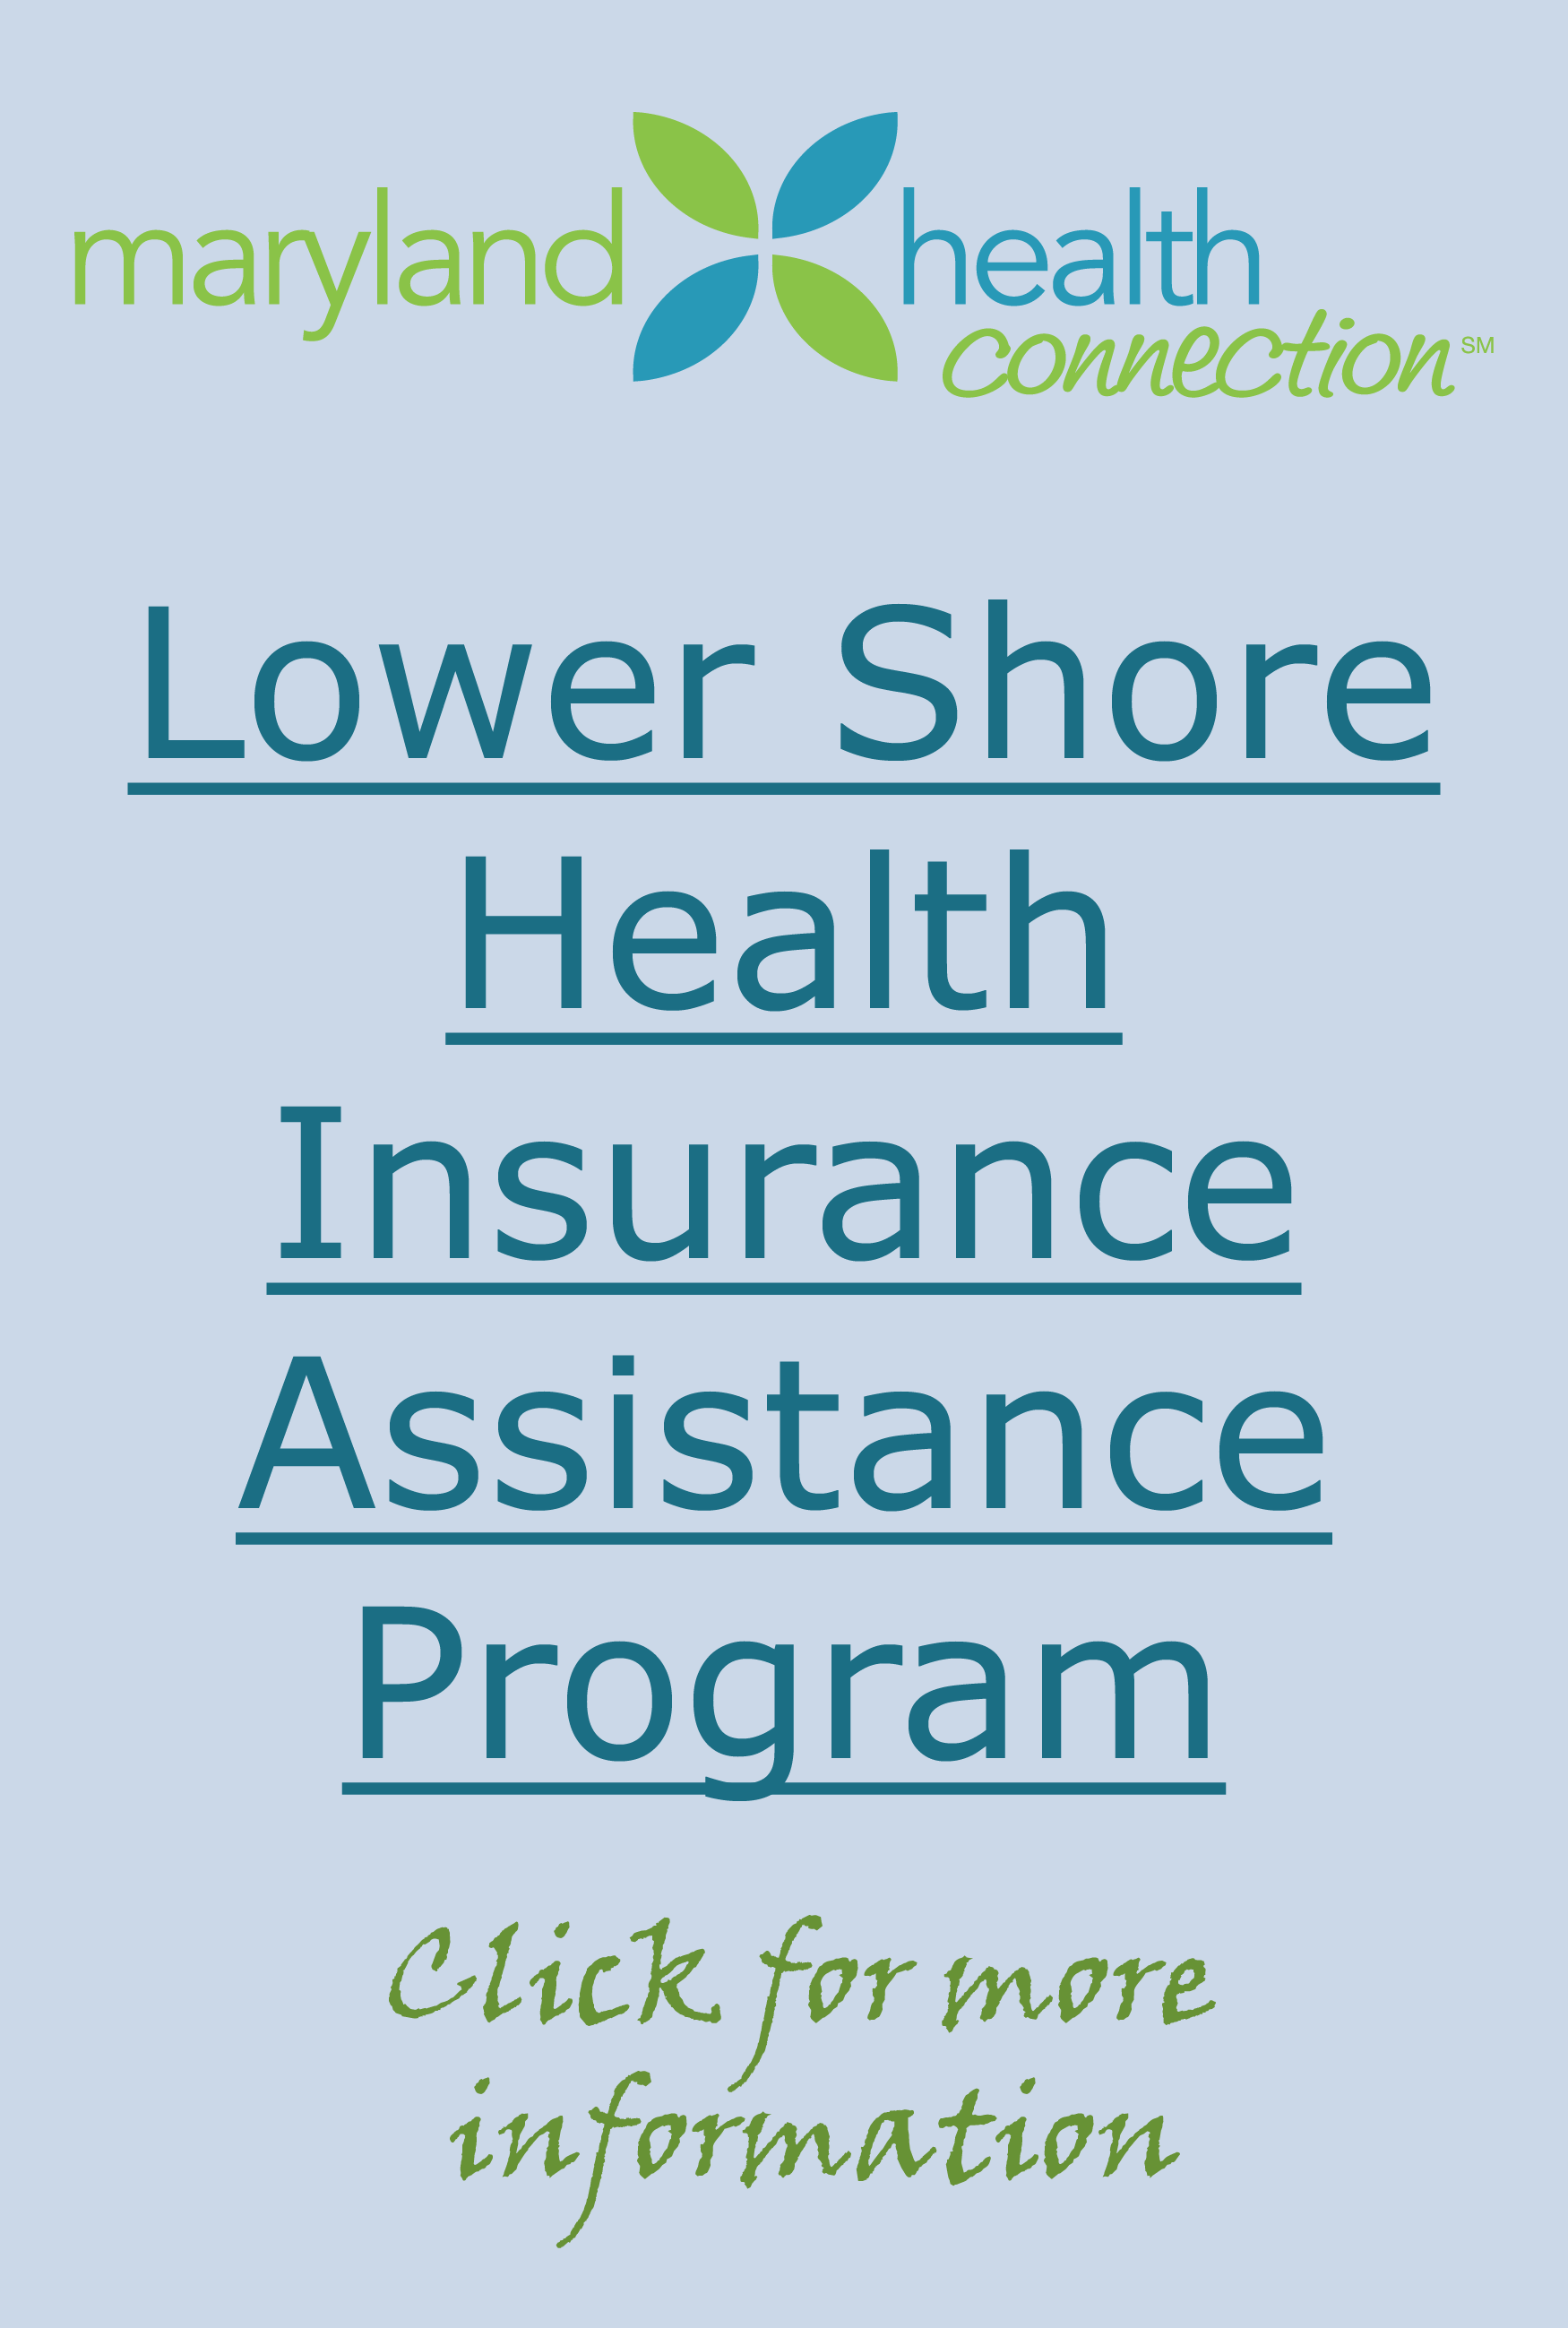 Lower Shore Health Insurance Assistance Program